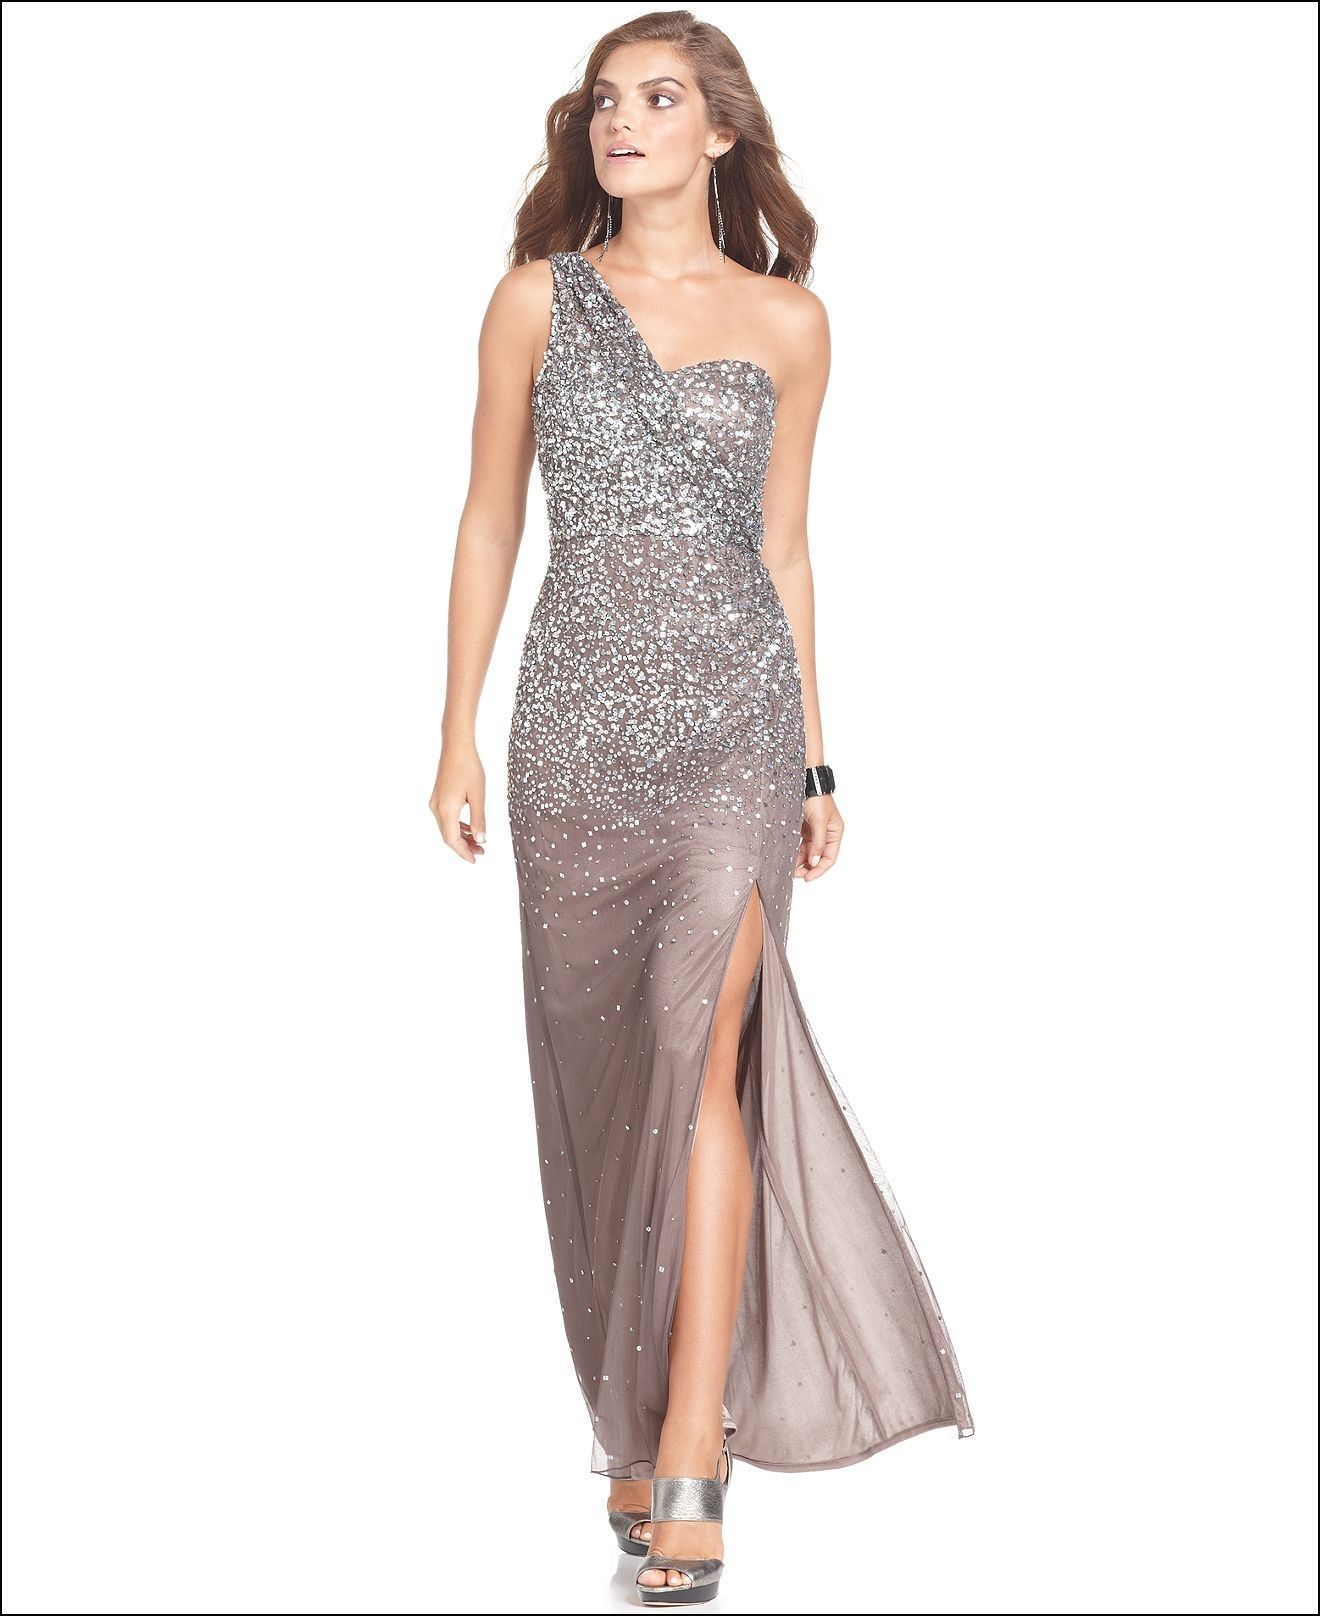 Macys formal Gowns | Dresses and Gowns Ideas | Pinterest | Formal ...